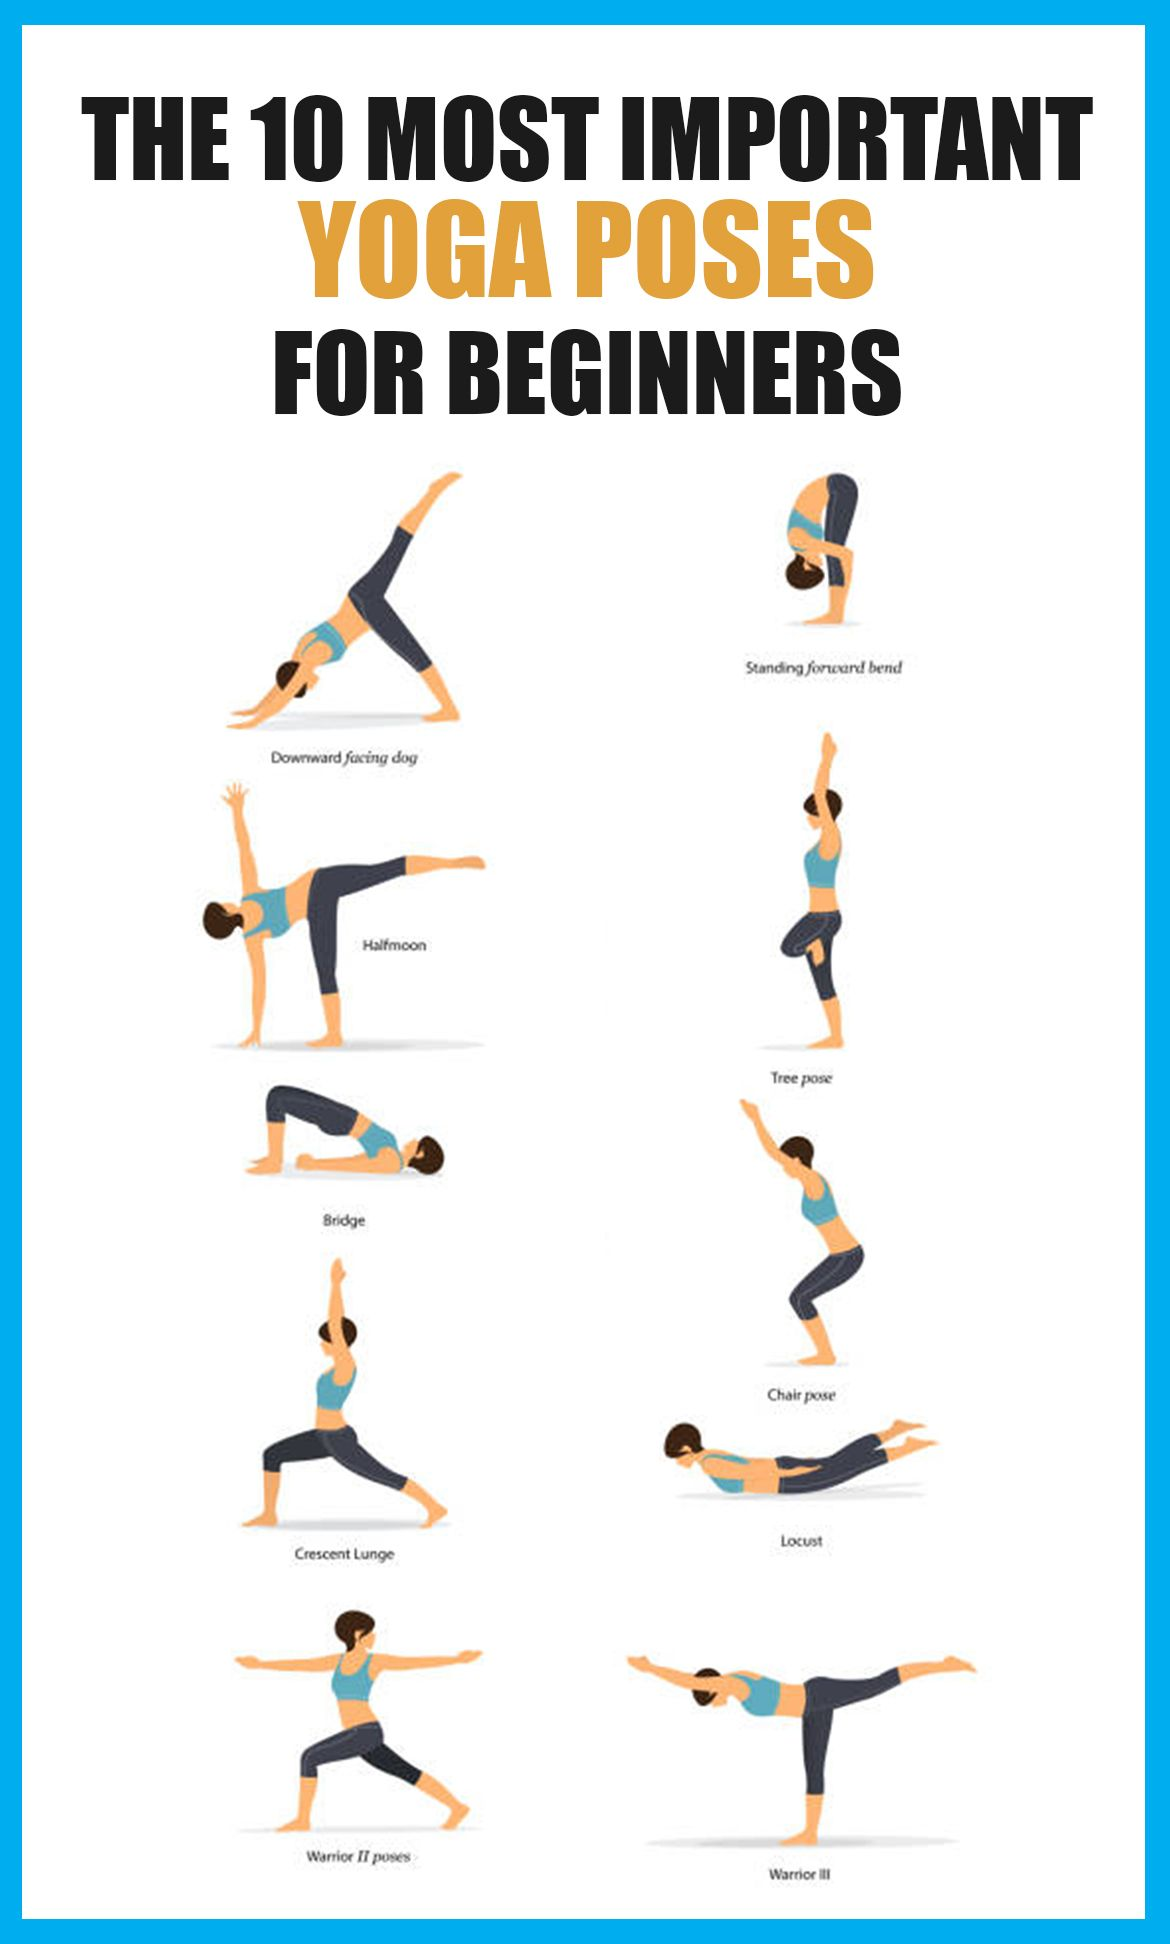 The 10 Most Important Yoga Poses For Beginners Yoga Poses For Beginners Yoga Poses Yoga For Beginners